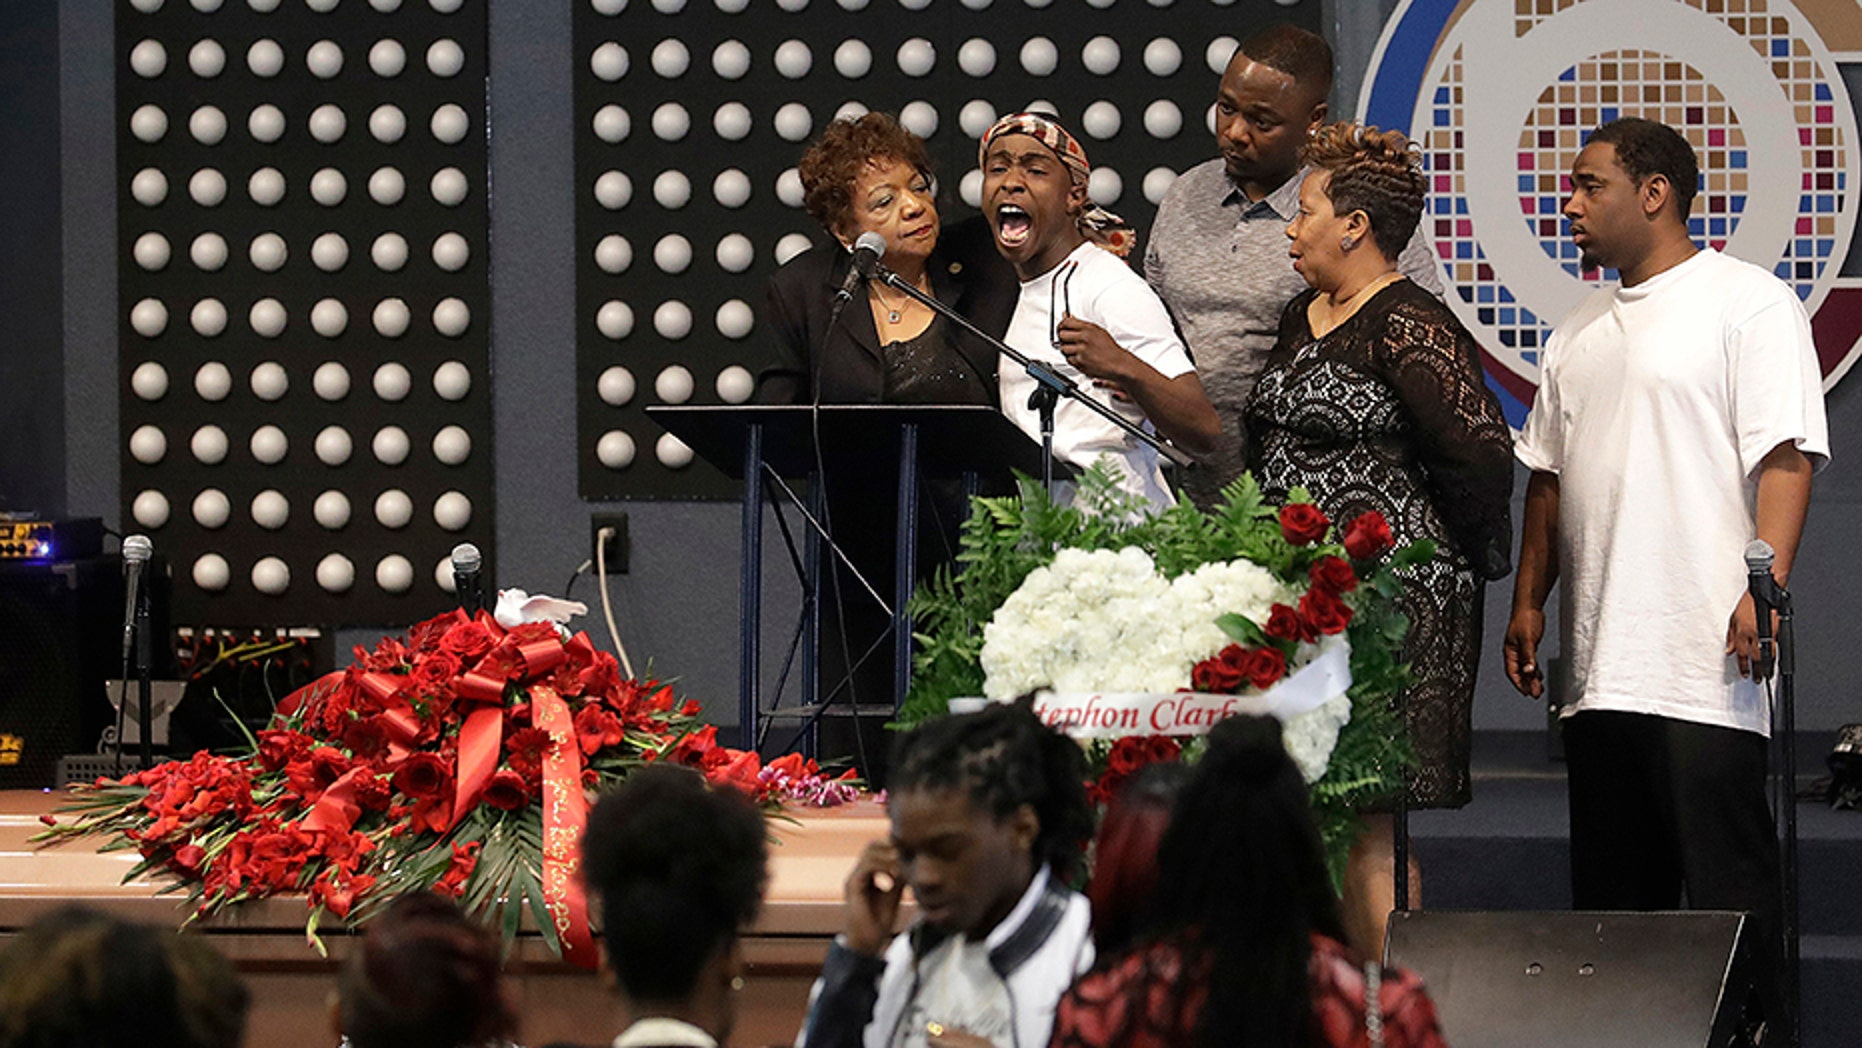 Stephon Clarks Brother Gets Emotional At Tense Funeral As